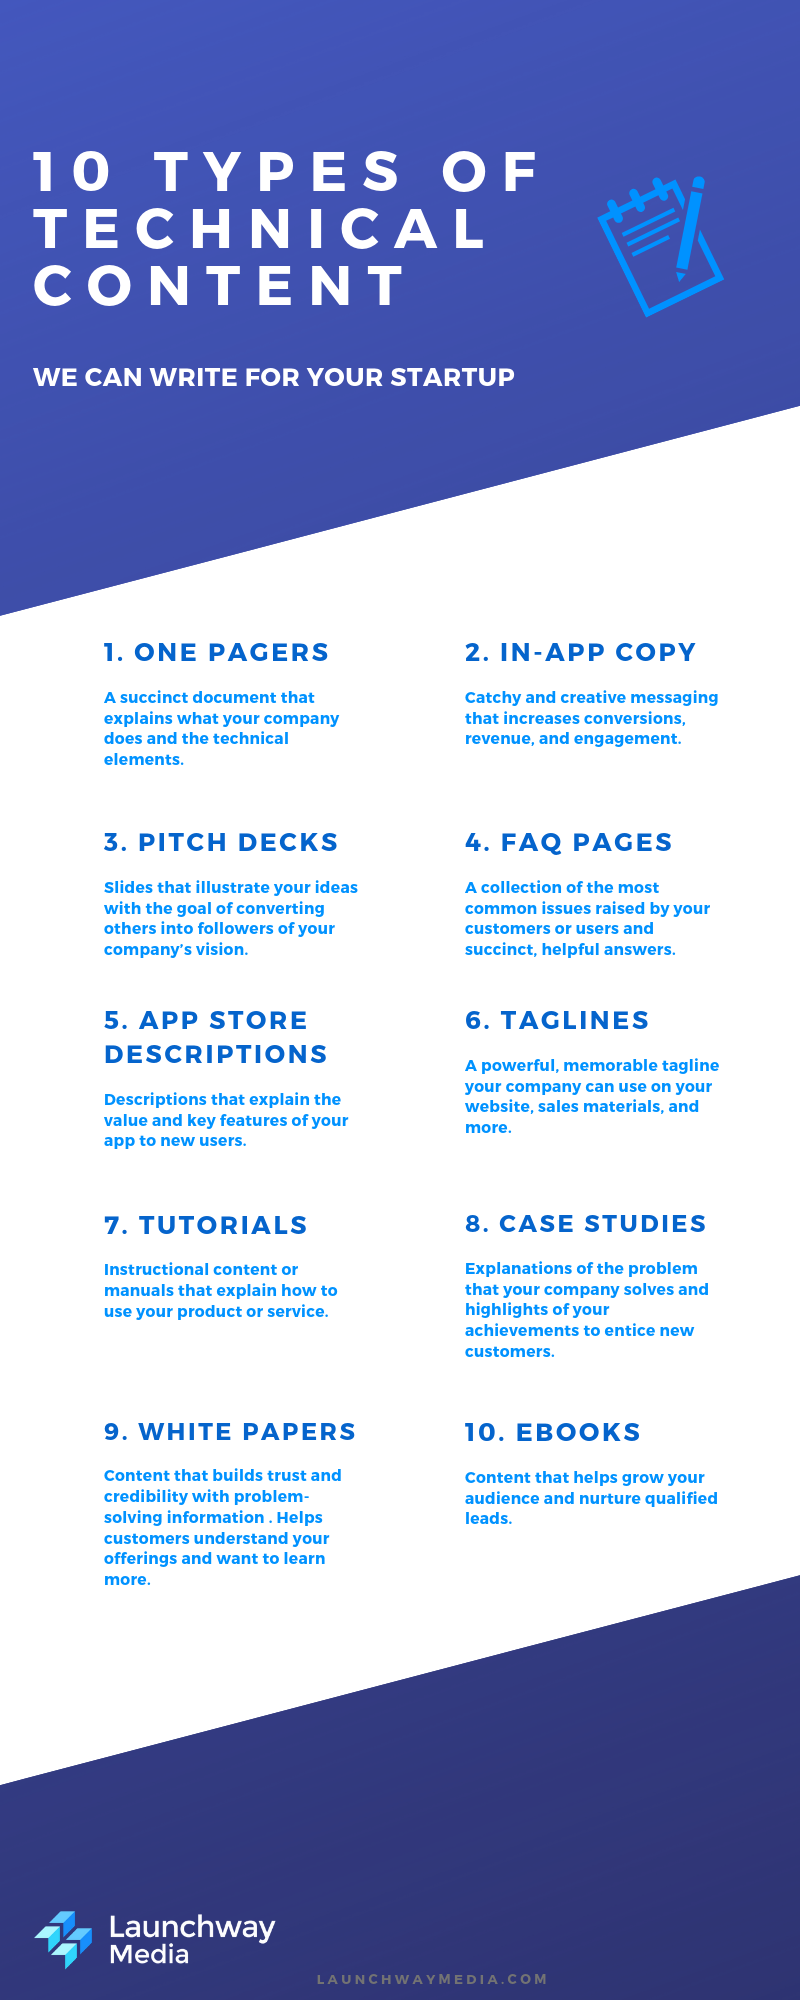 technical content for startups infographic.png